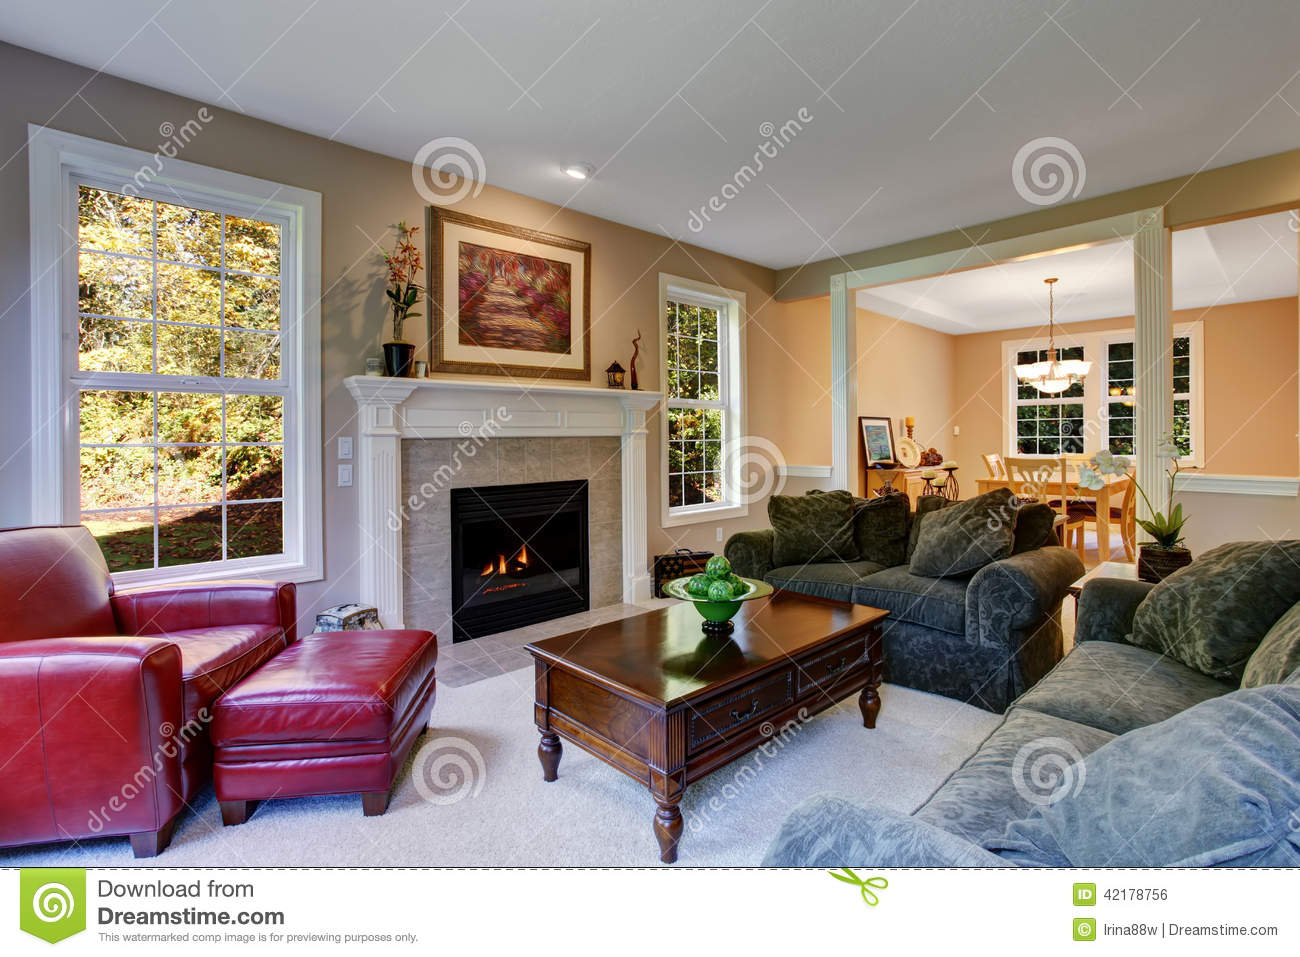 Cozy Living Room Interior With Fireplace Stock Photo Image Of Fireplace Decor 42178756